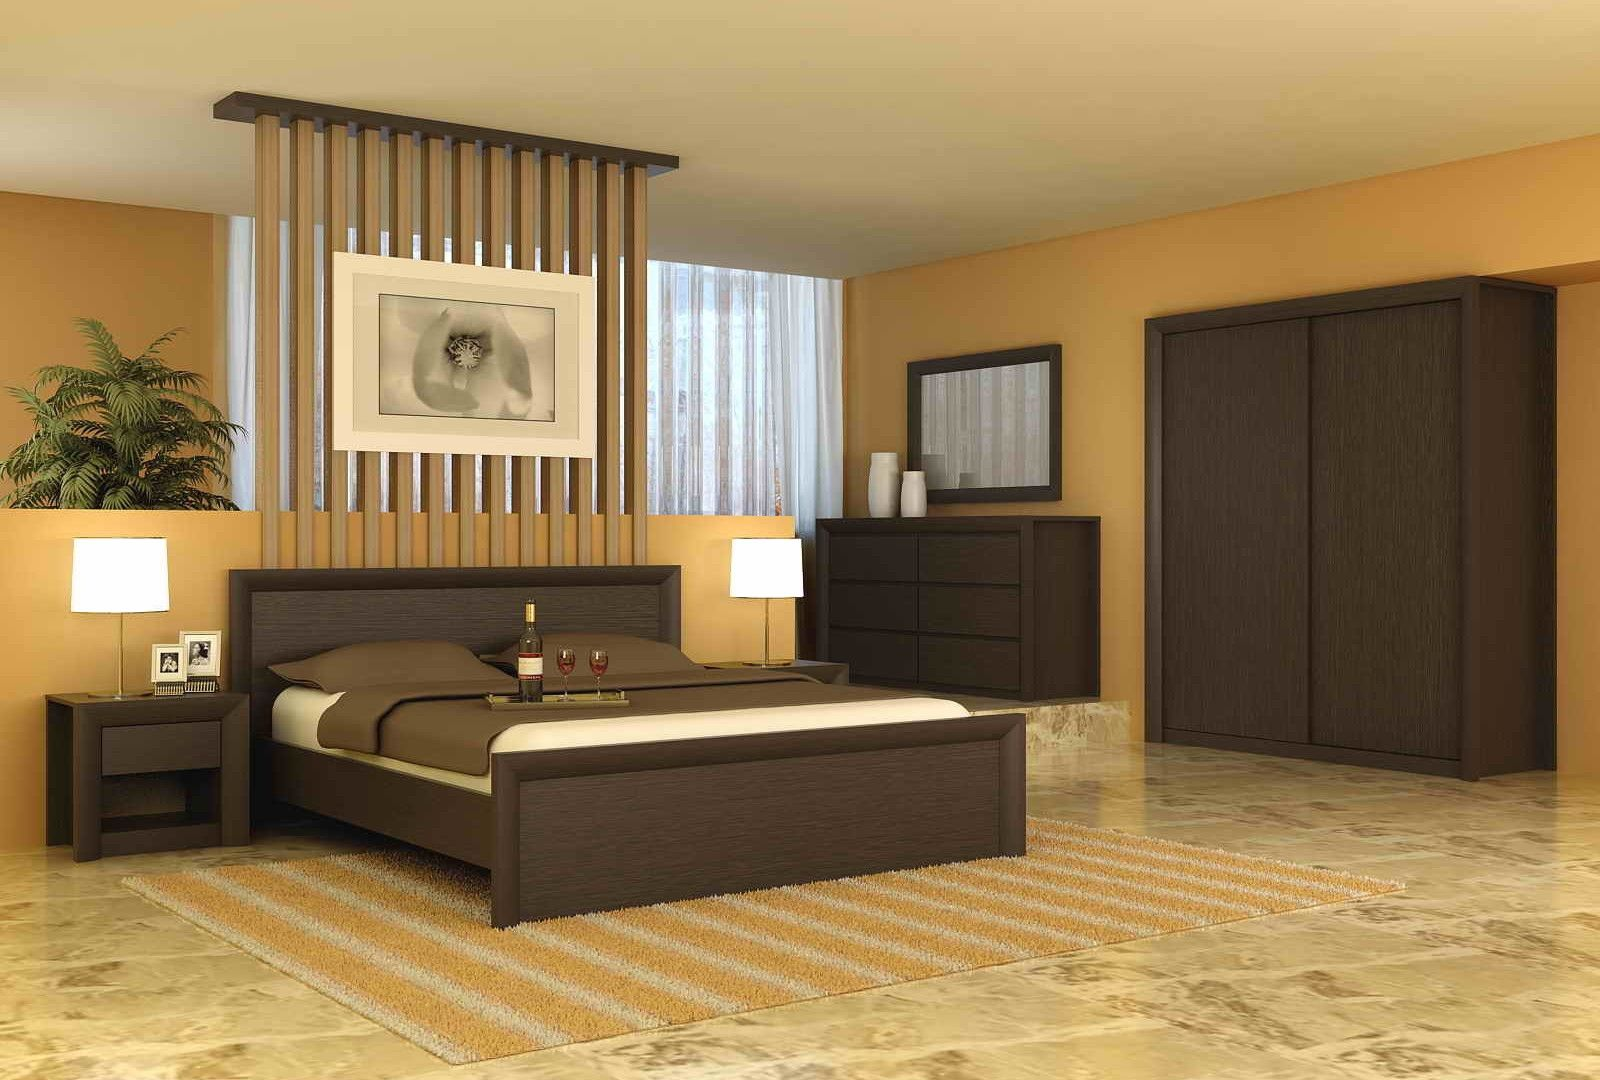 Simple bedroom furniture - Simple Bedroom Wall Wardrobe Design Simple Modern Bedroom Decorating Ideas With Calm Wall Color Shades And